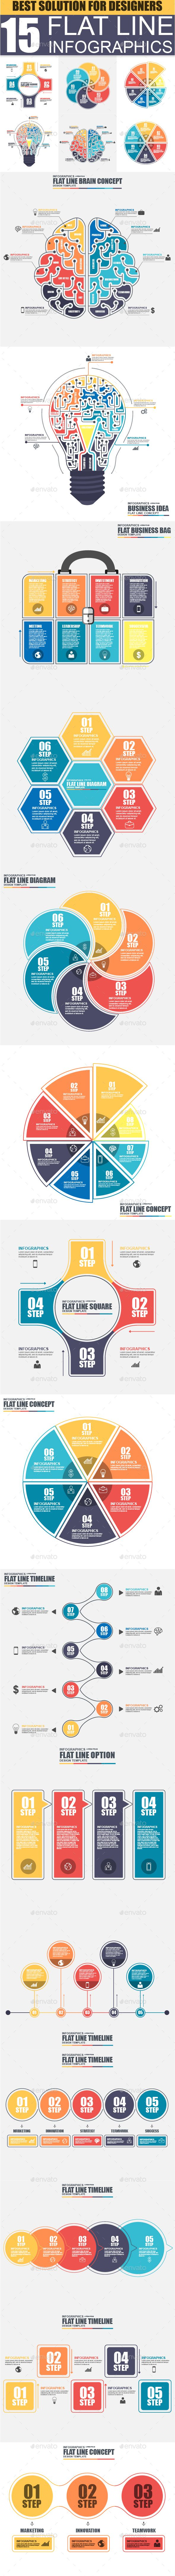 Set of Flat Line Business Infographic — Photoshop PSD #business #chart • Available here → https://graphicriver.net/item/set-of-flat-line-business-infographic/18030289?ref=pxcr